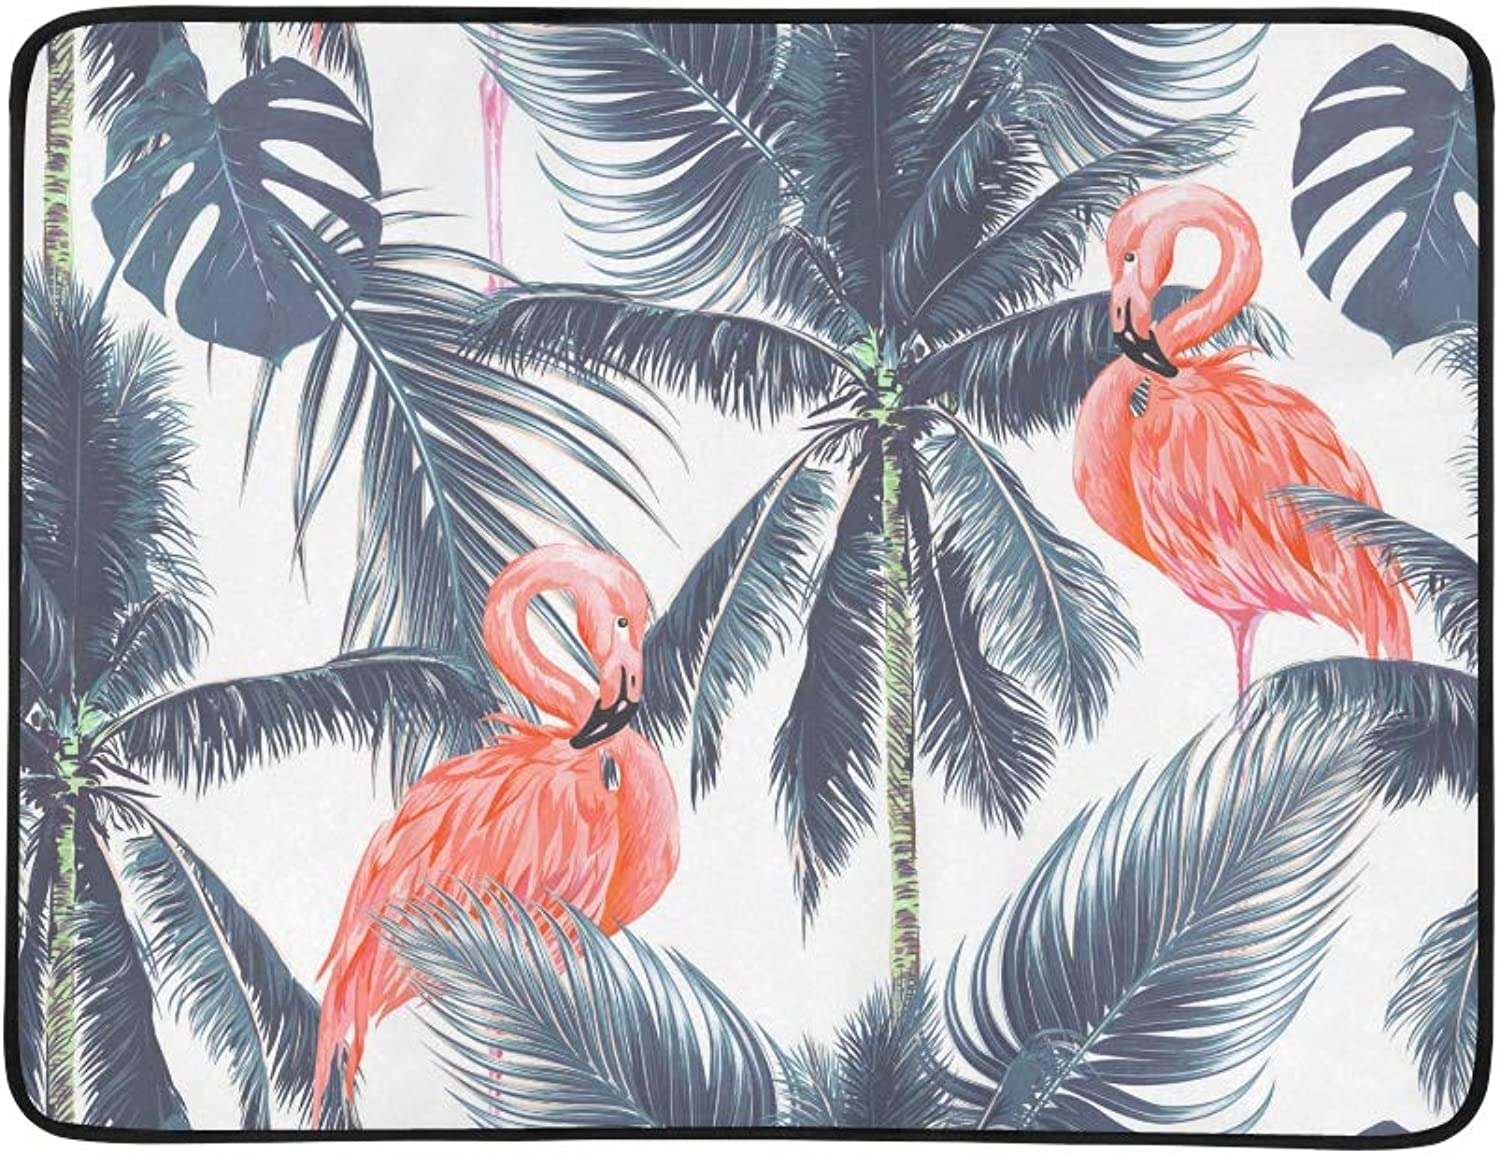 Watercolor Pink Flamingo and Palm Trees Pattern Portable and Foldable Blanket Mat 60x78 Inch Handy Mat for Camping Picnic Beach Indoor Outdoor Travel